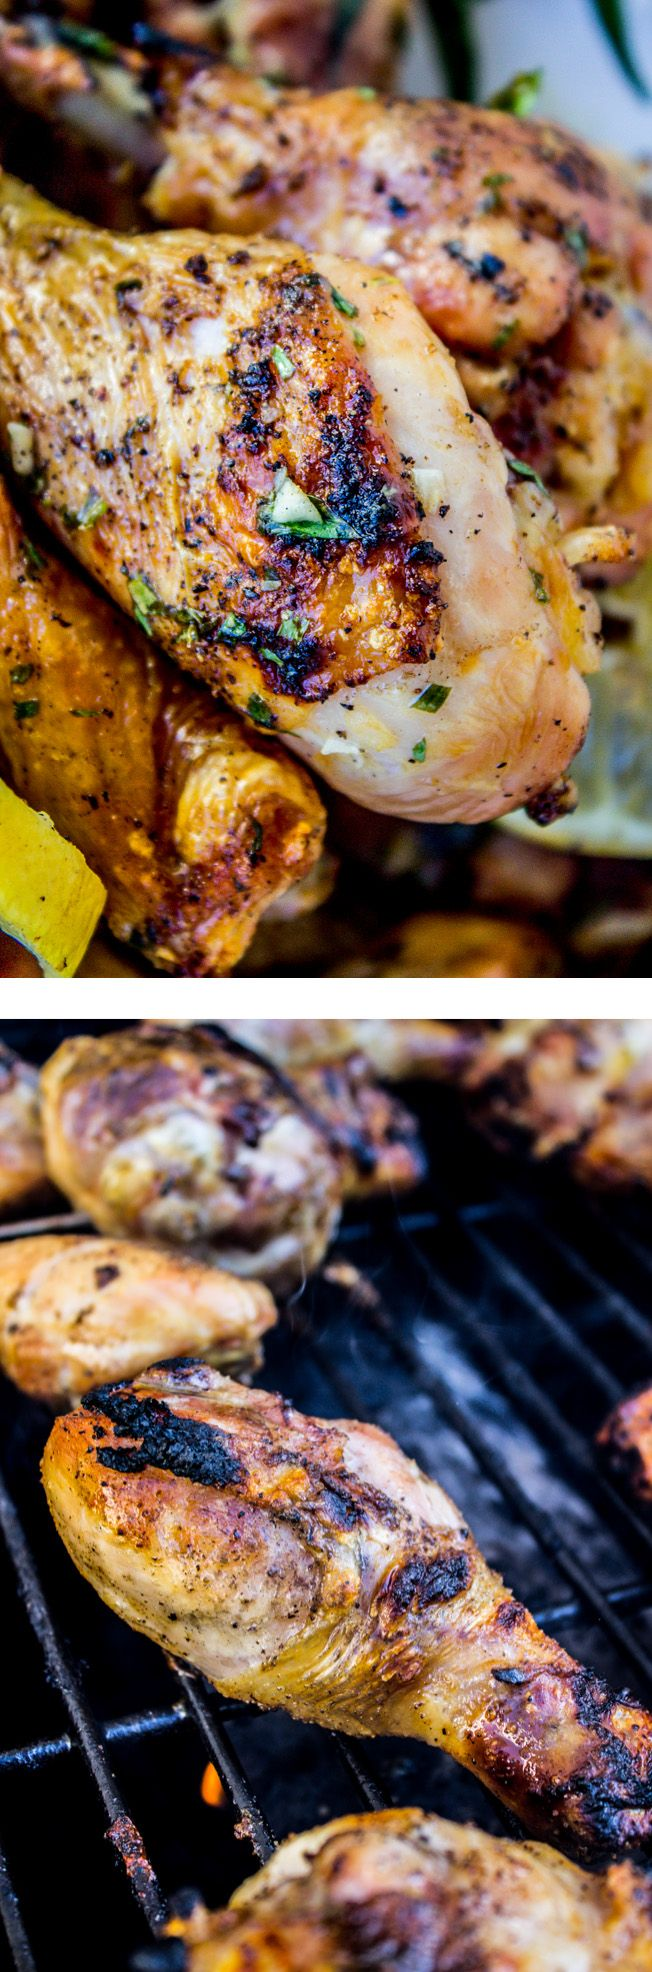 Lemon Tarragon Grilled Chicken from The Food Charlatan. Easy and fast grilled chicken is the way to go! Try this recipe that's jazzed up with lemon and tarragon, it's sooooo good.